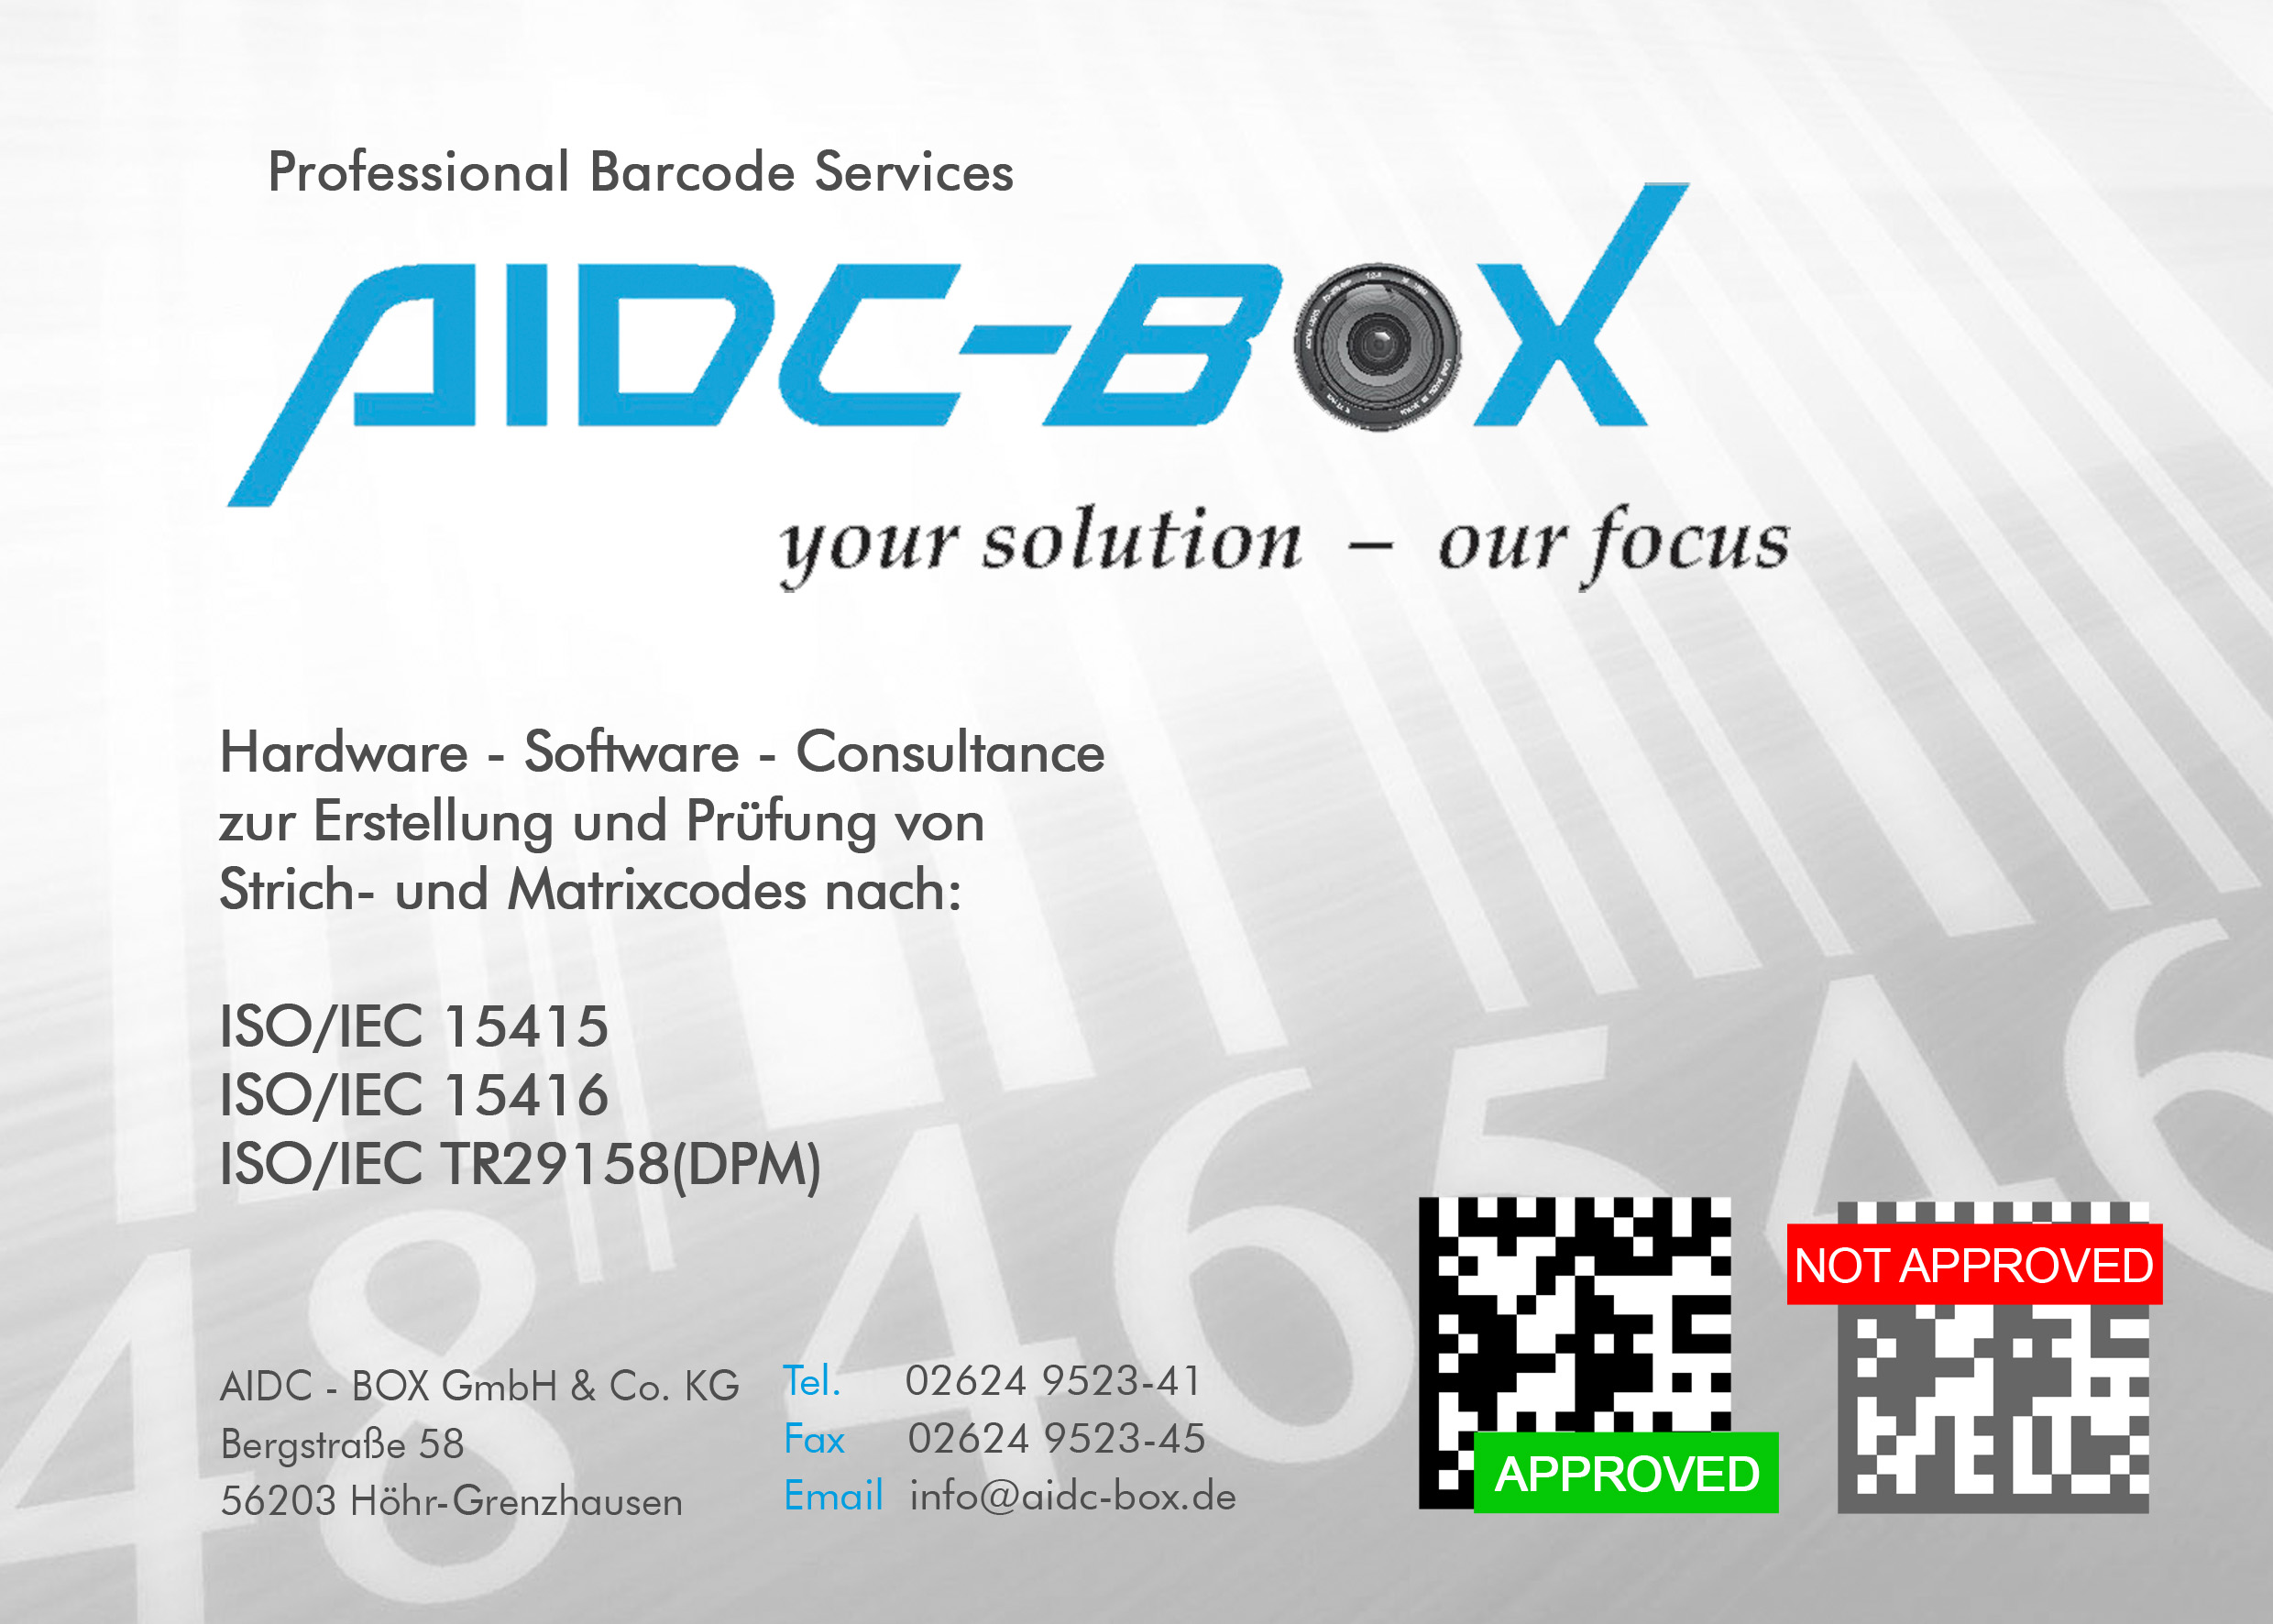 AIDC-BOX GmbH & Co.KG